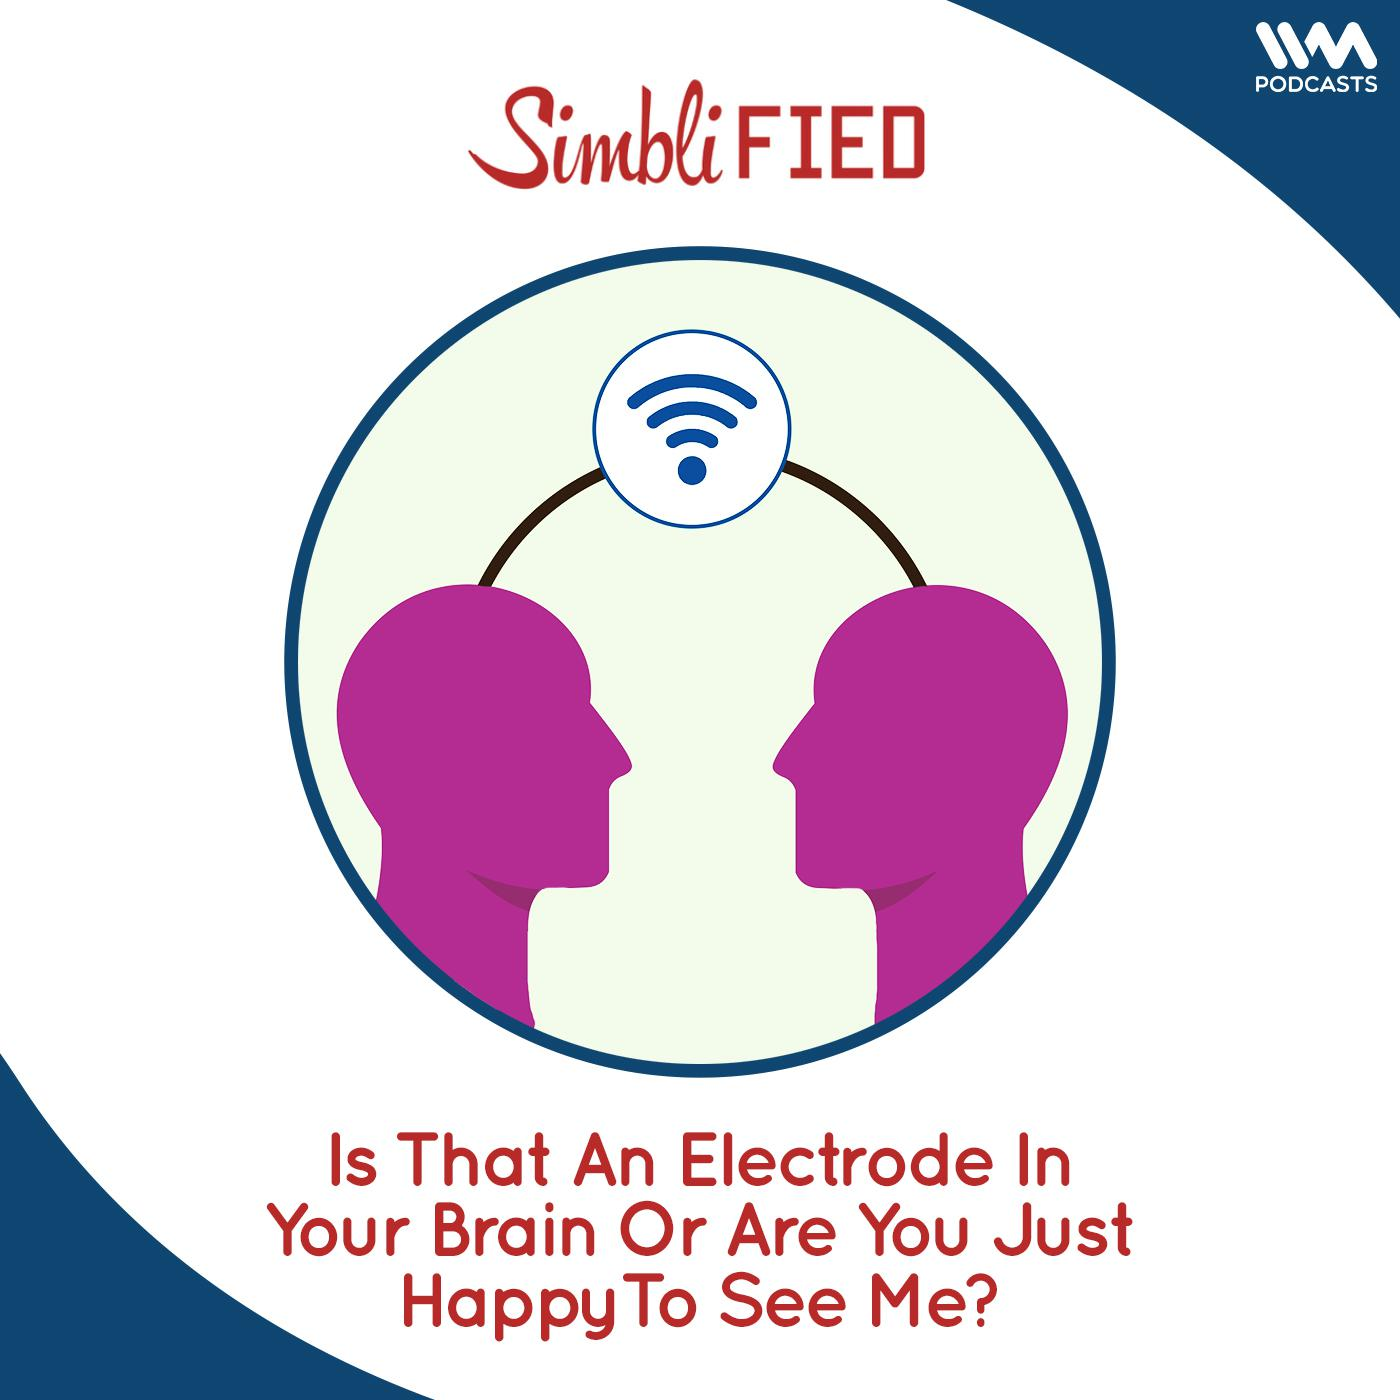 Is That An Electrode In Your Brain Or Are You Just Happy To See Me?